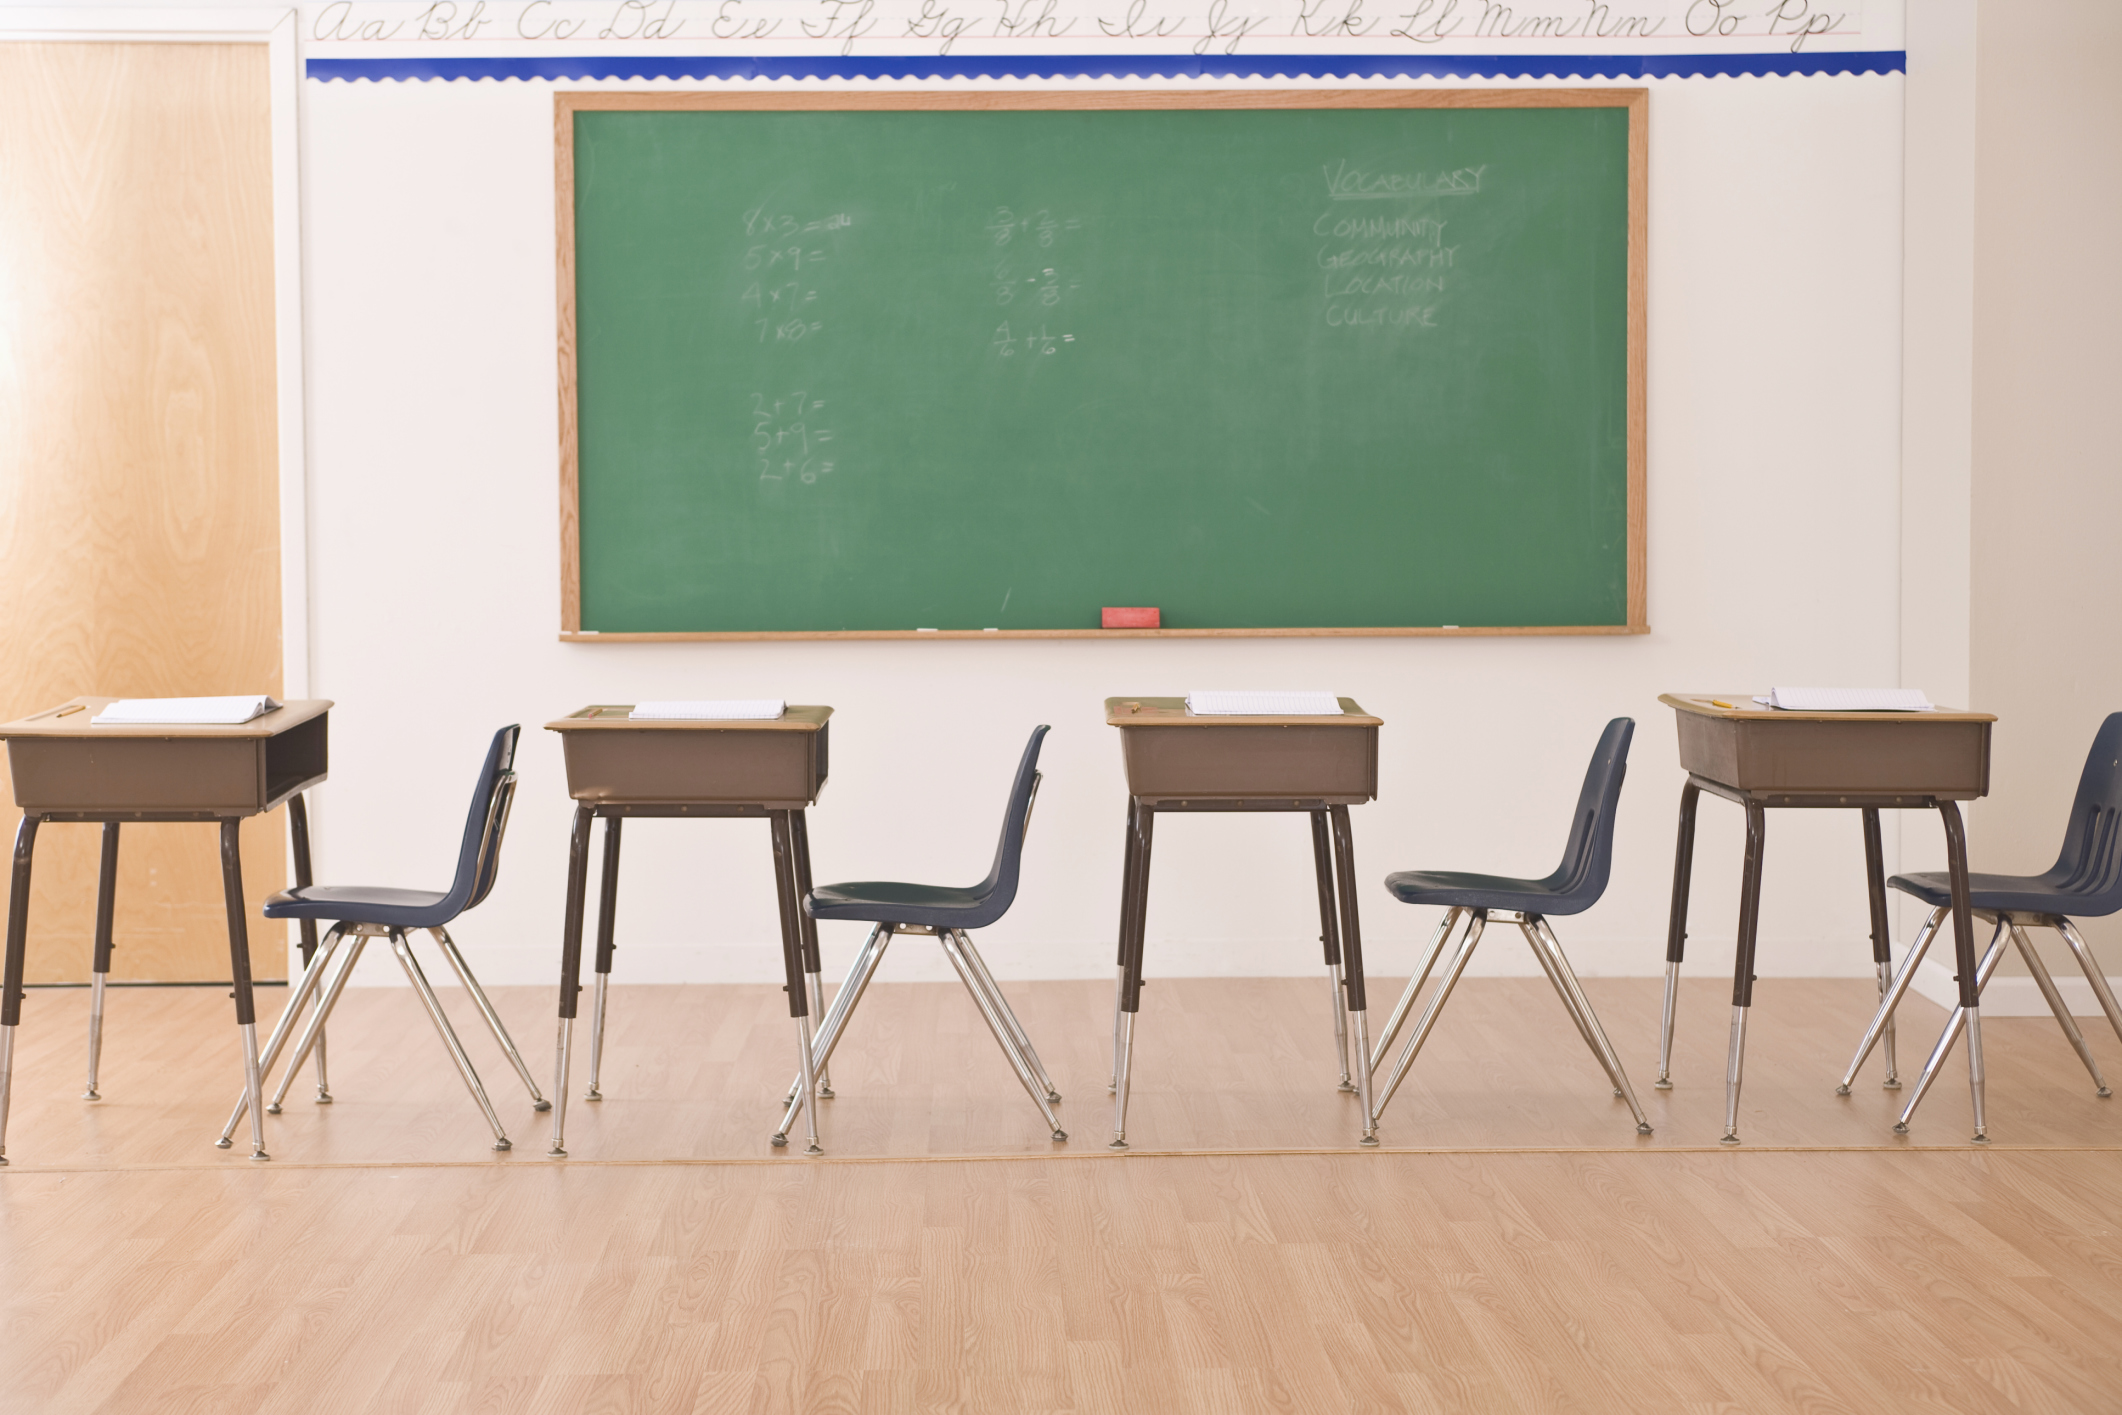 Does Every Vermont Student Get An Equal Chance At A Good Education?